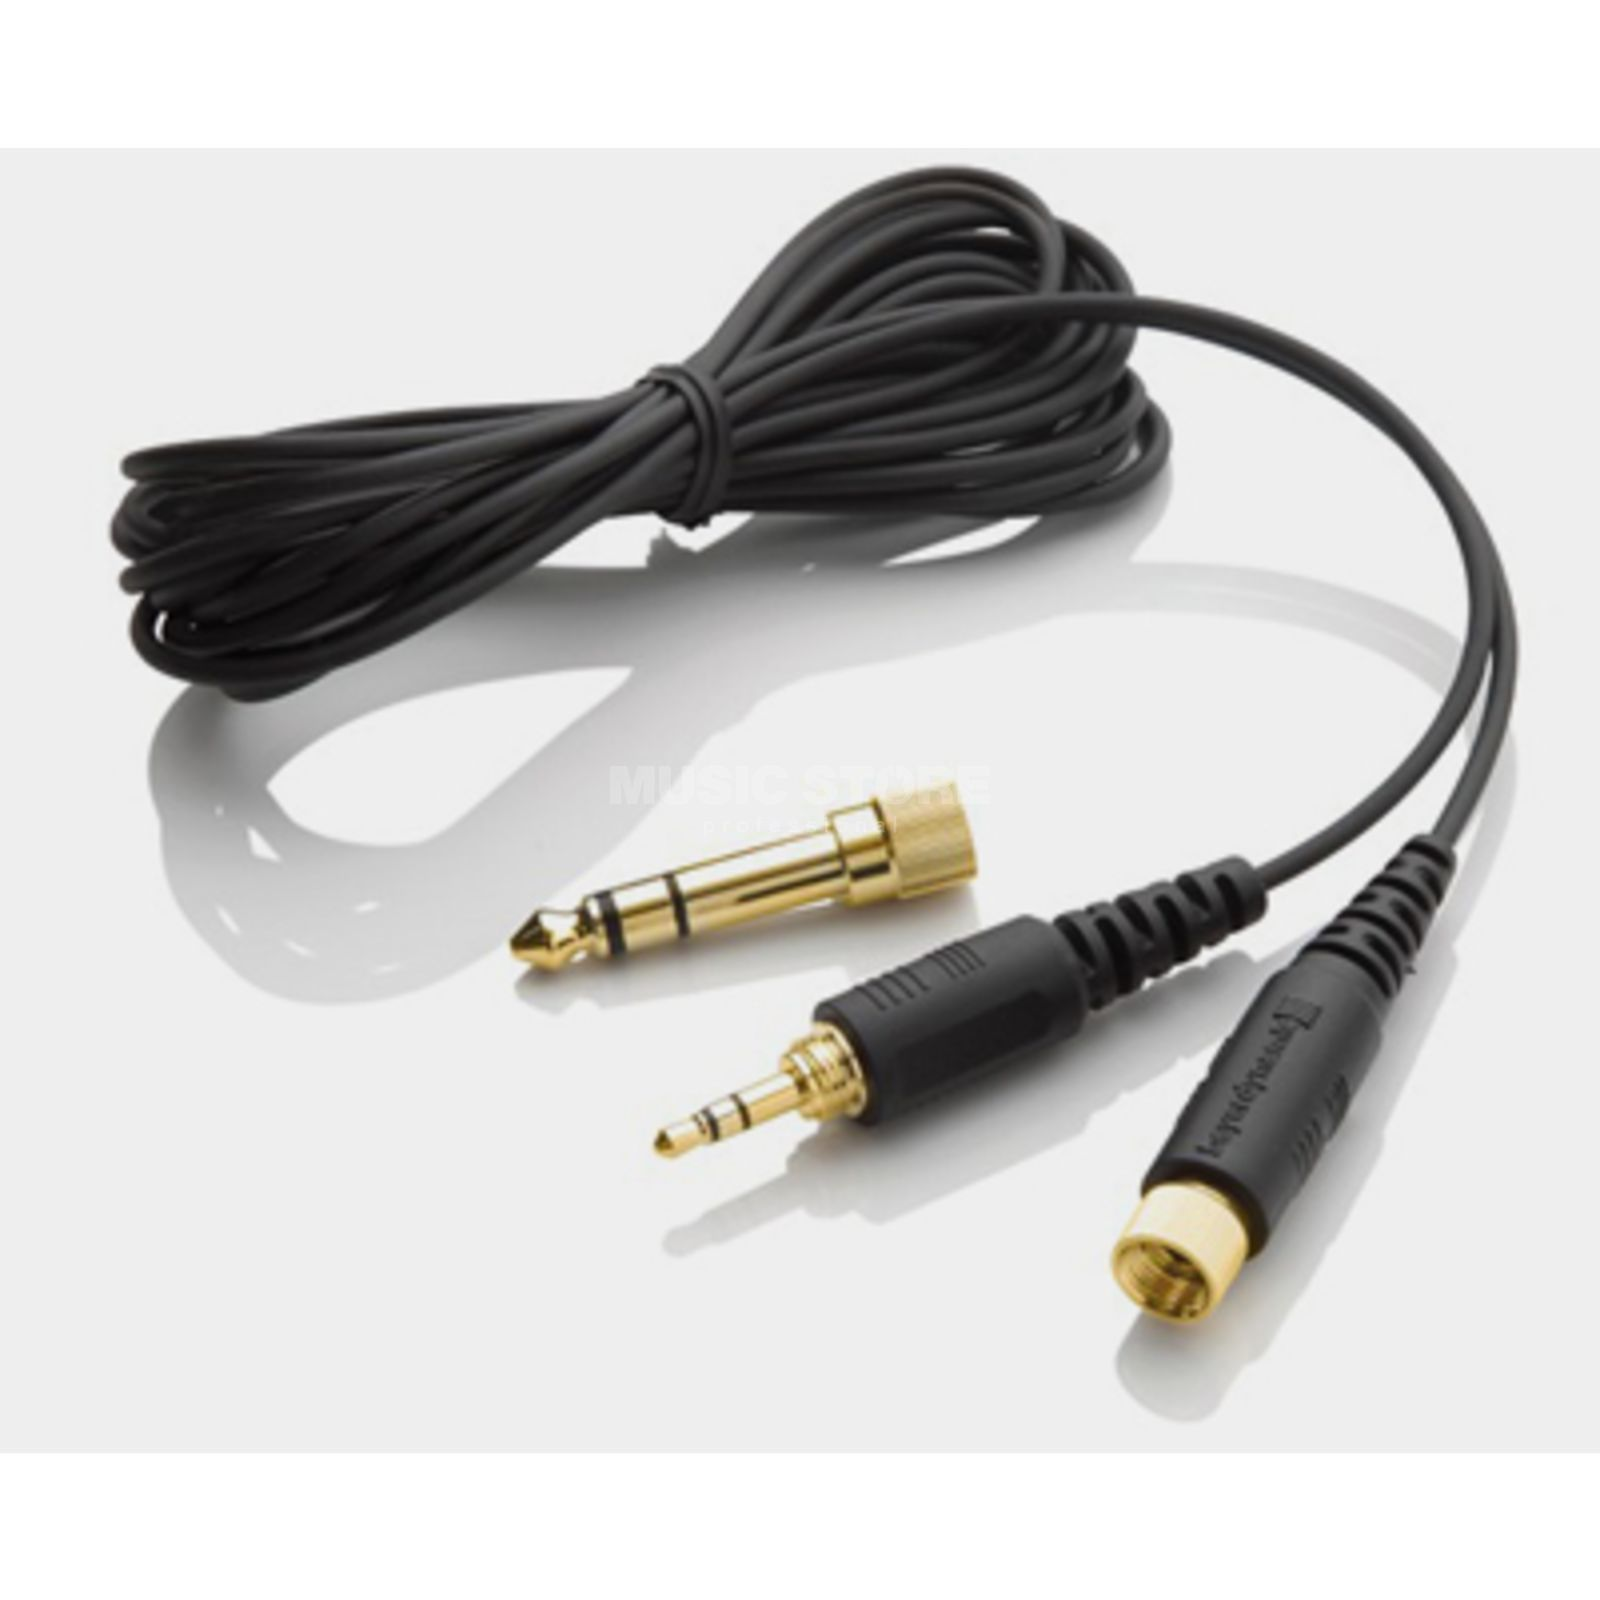 beyerdynamic DT-Extension Kabel, 3m Verlängerung 3,5/6,3mm stereo Product Image